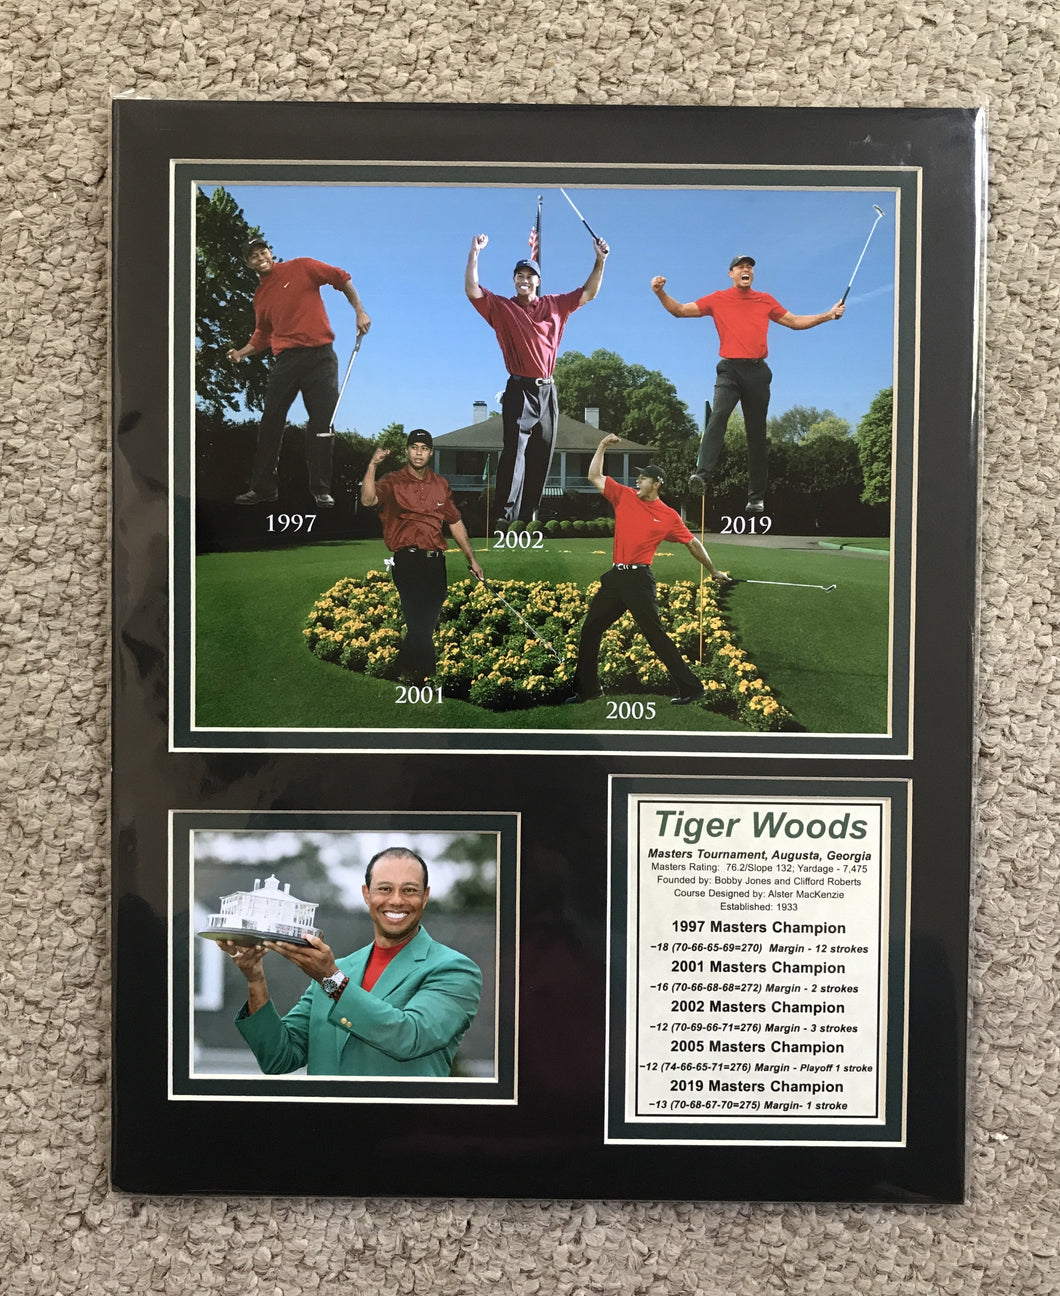 Tiger Woods 5 times Masters champion